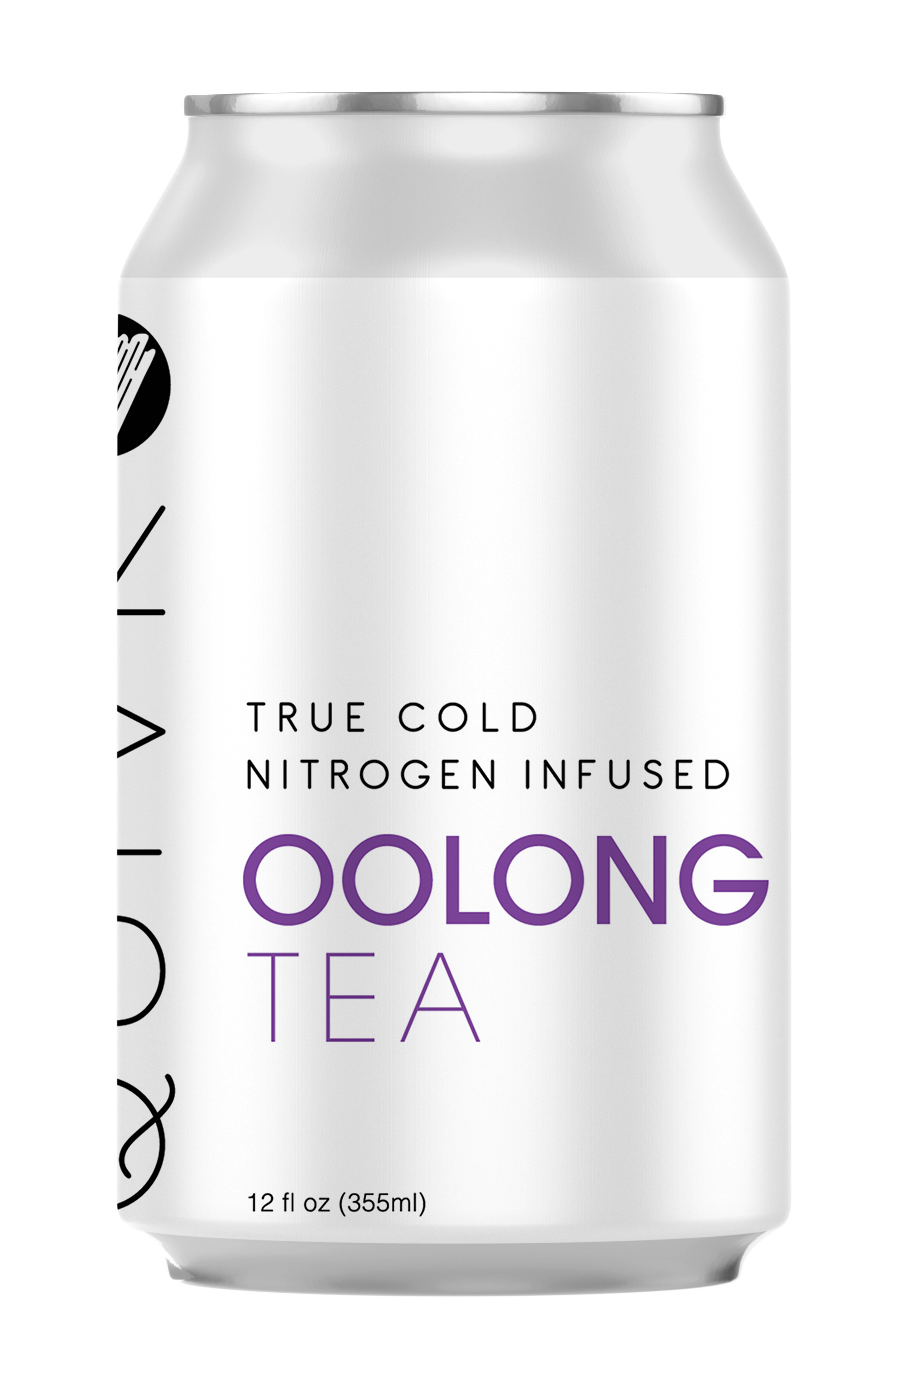 A Quivr Oolong Tea can showing the flavor name